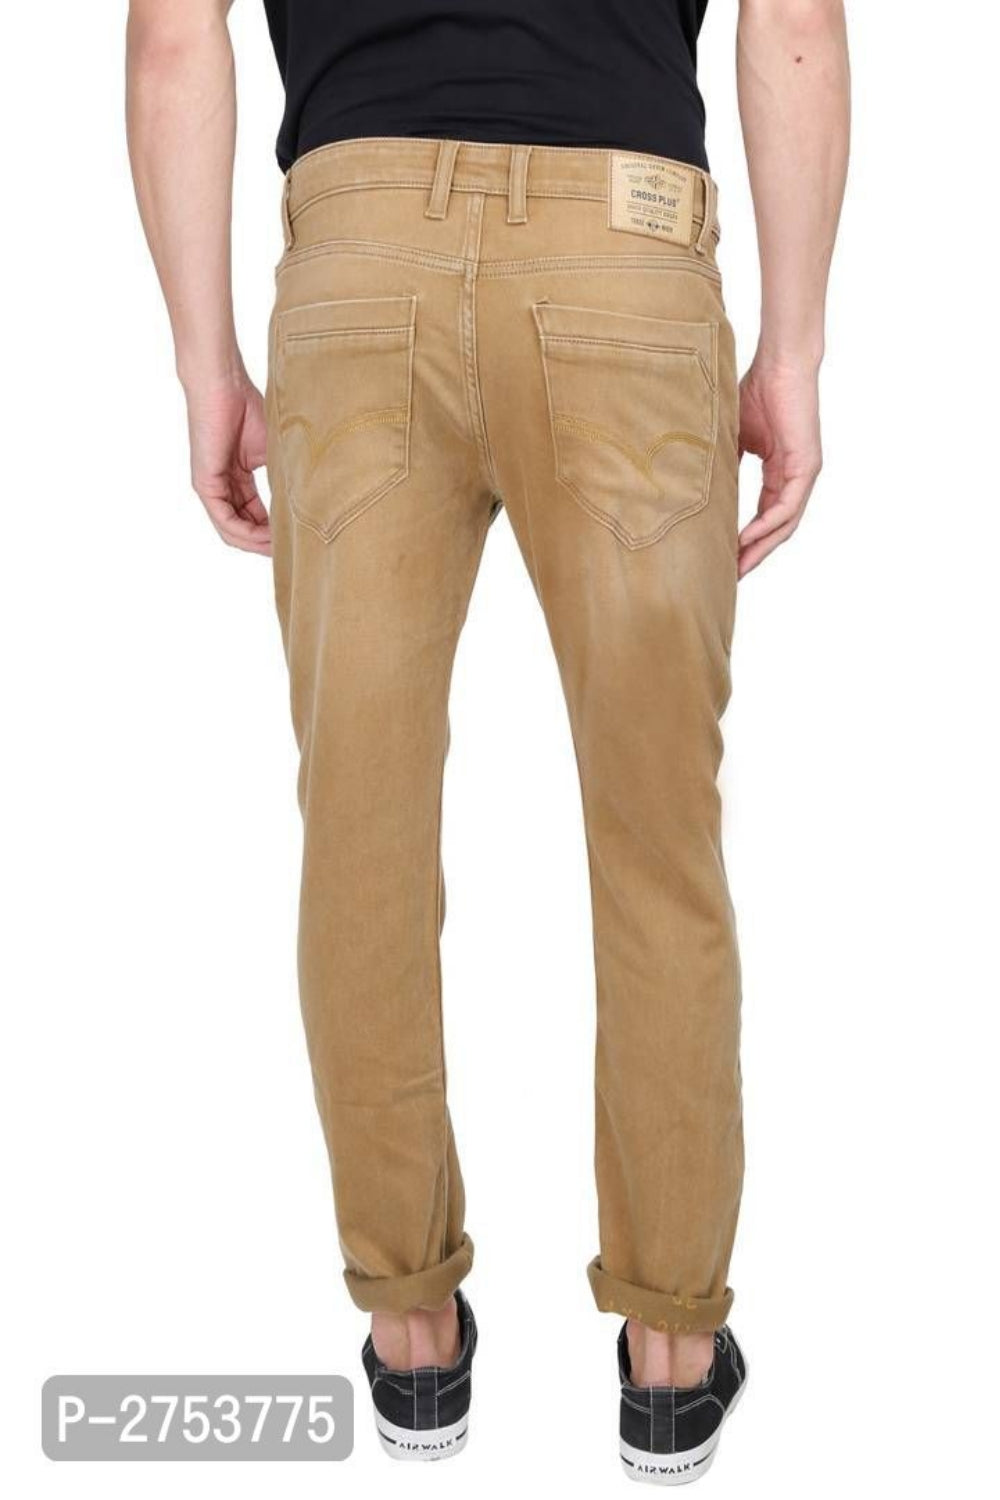 Tan Brown Stretchable Denim Jeans